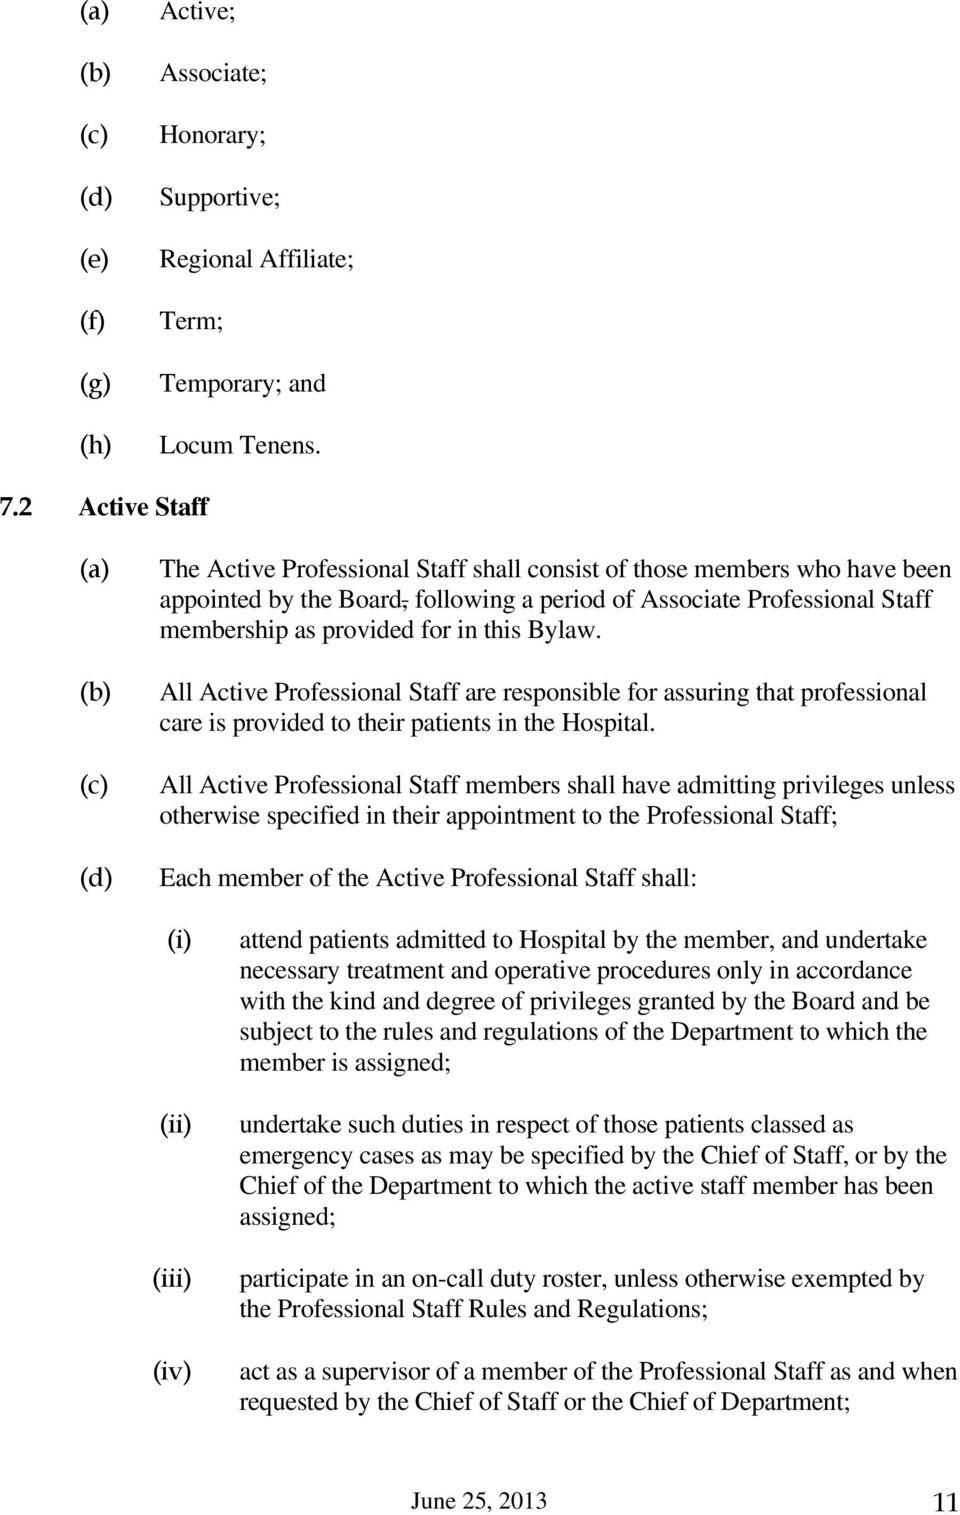 Bylaw. All Active Professional Staff are responsible for assuring that professional care is provided to their patients in the Hospital.